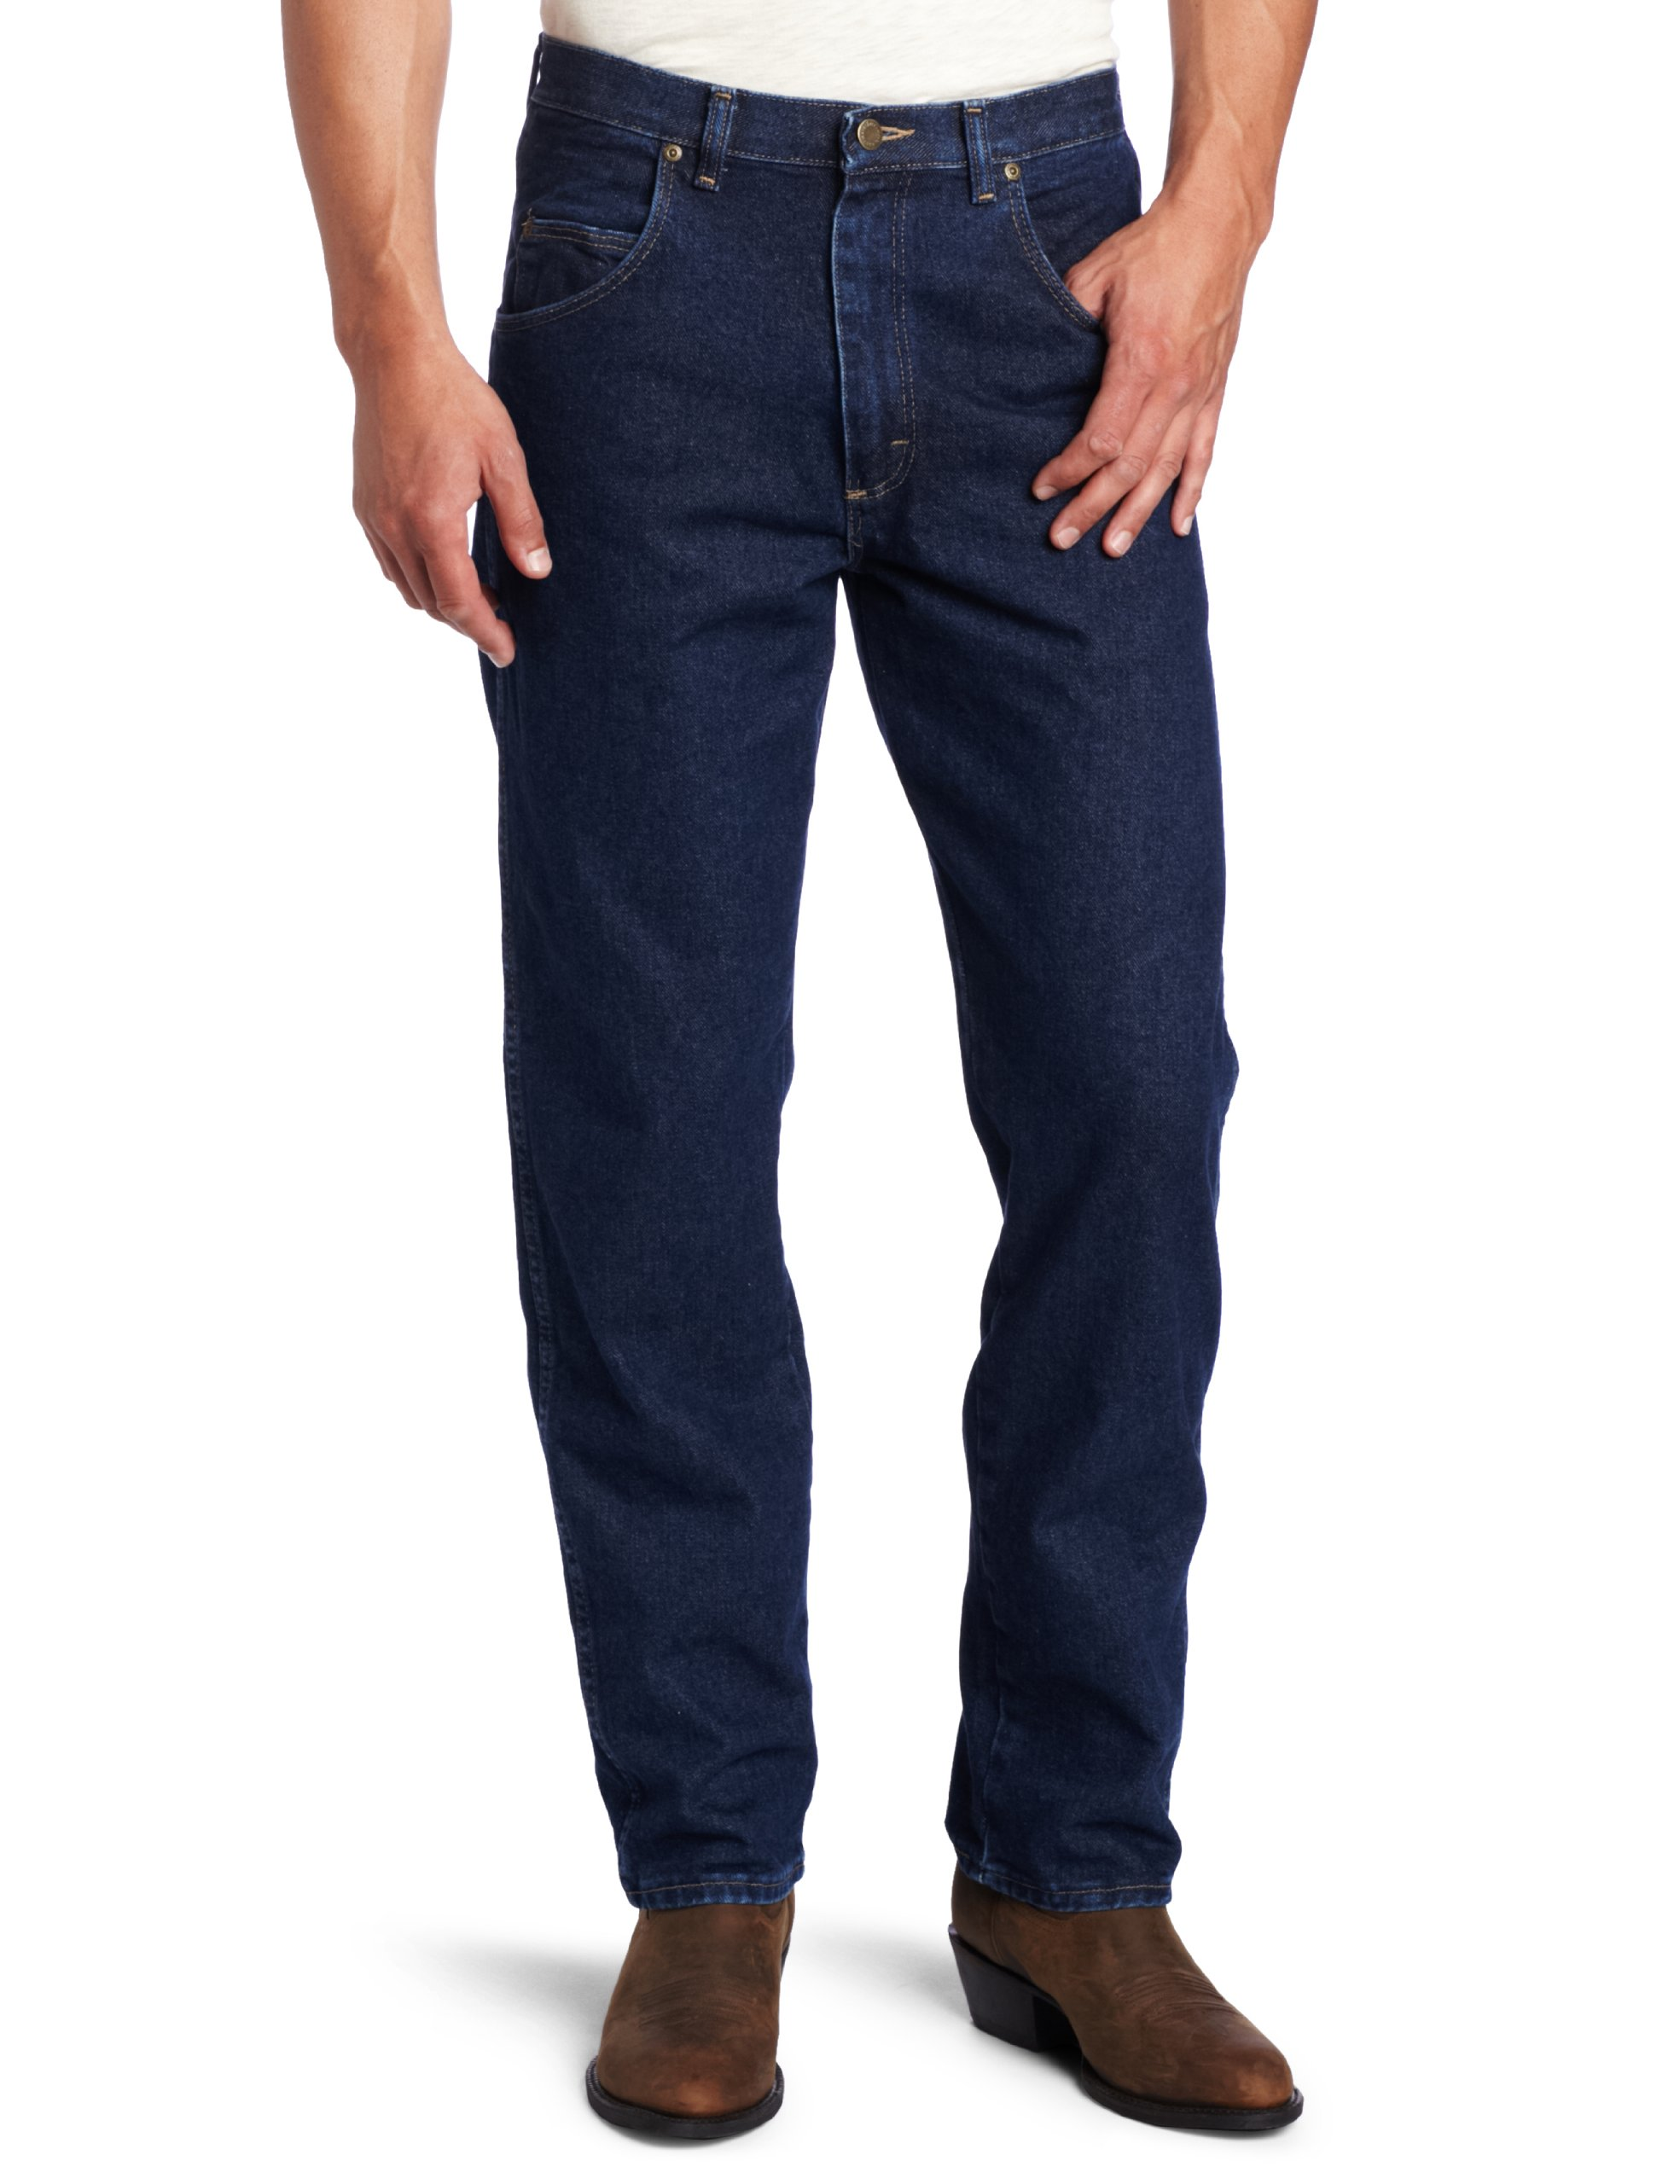 Wrangler Men's Big Rugged Wear Relaxed Fit Jean, Antique Navy, 50x32